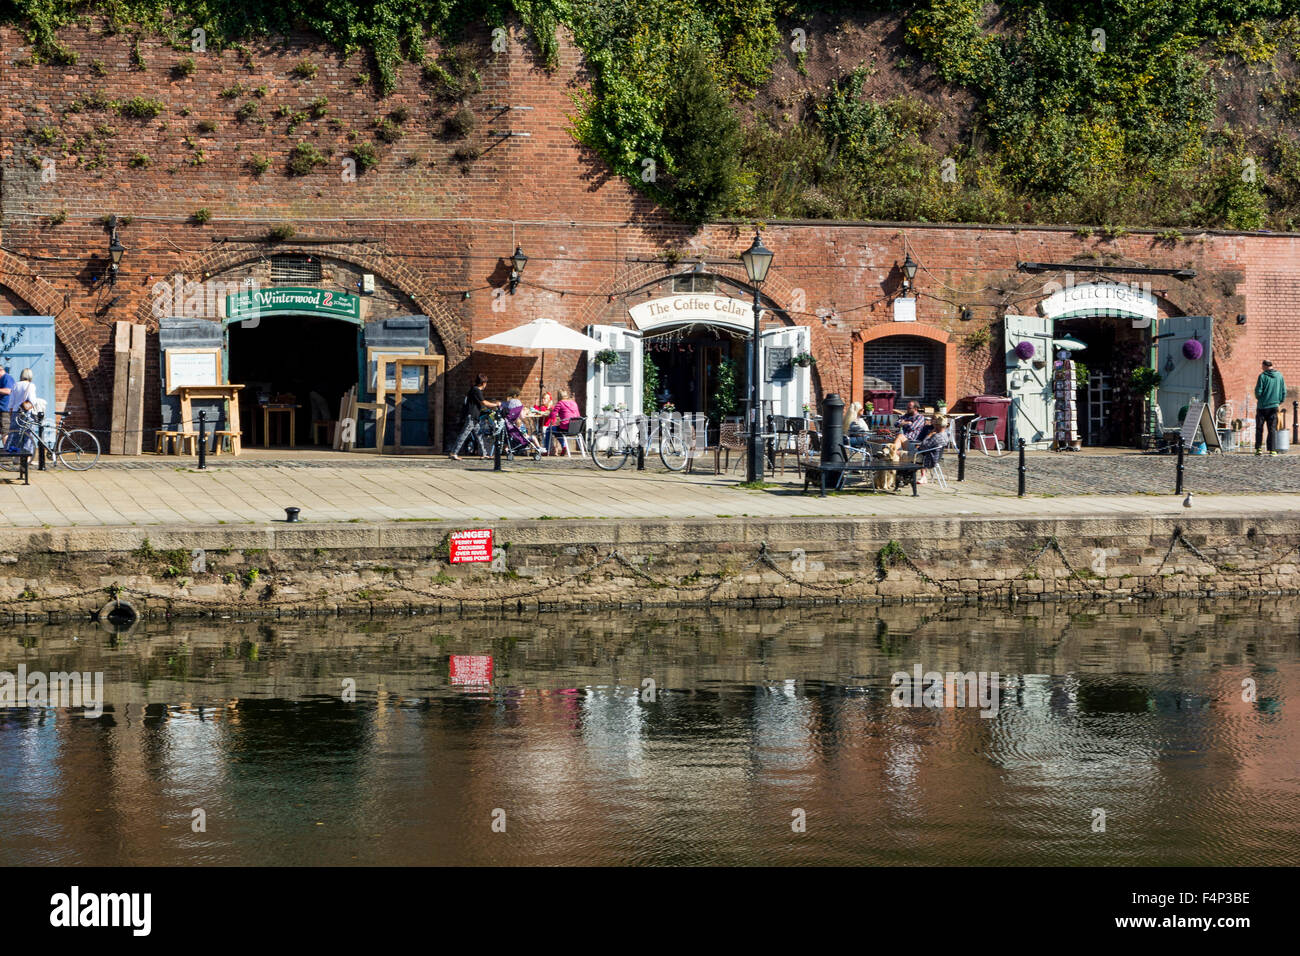 Historic Shops at The Old Cellars and River Exe Reflections, on a Sunny Autumn Afternoon, Exeter Quay, Devon. - Stock Image